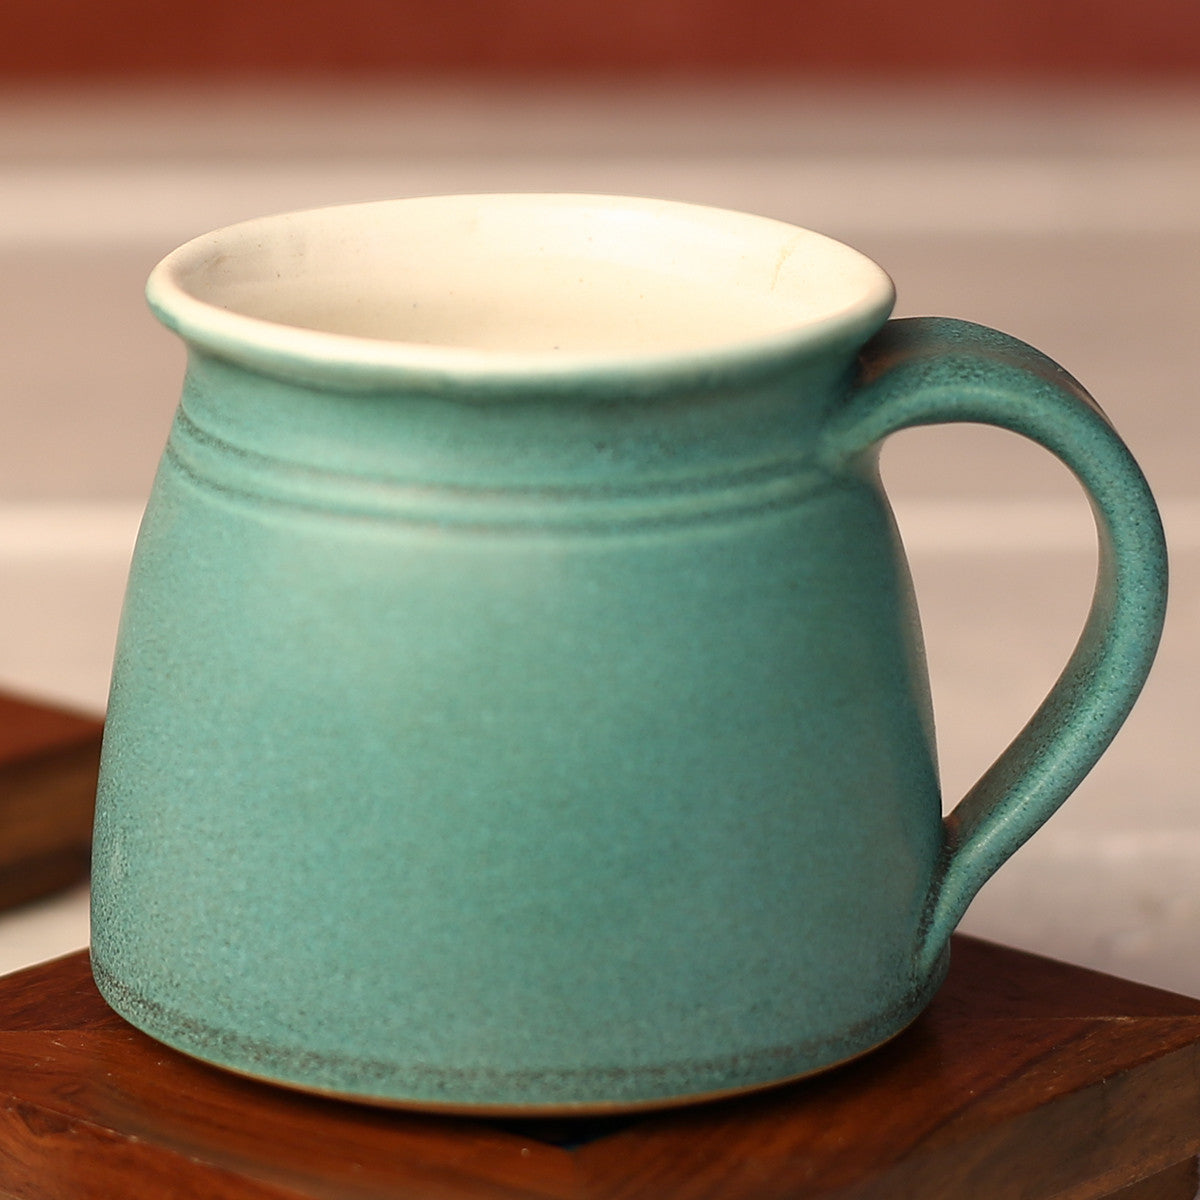 Turquoise Green Handmade Ceramic Cups from Pondicherry - Set of 2